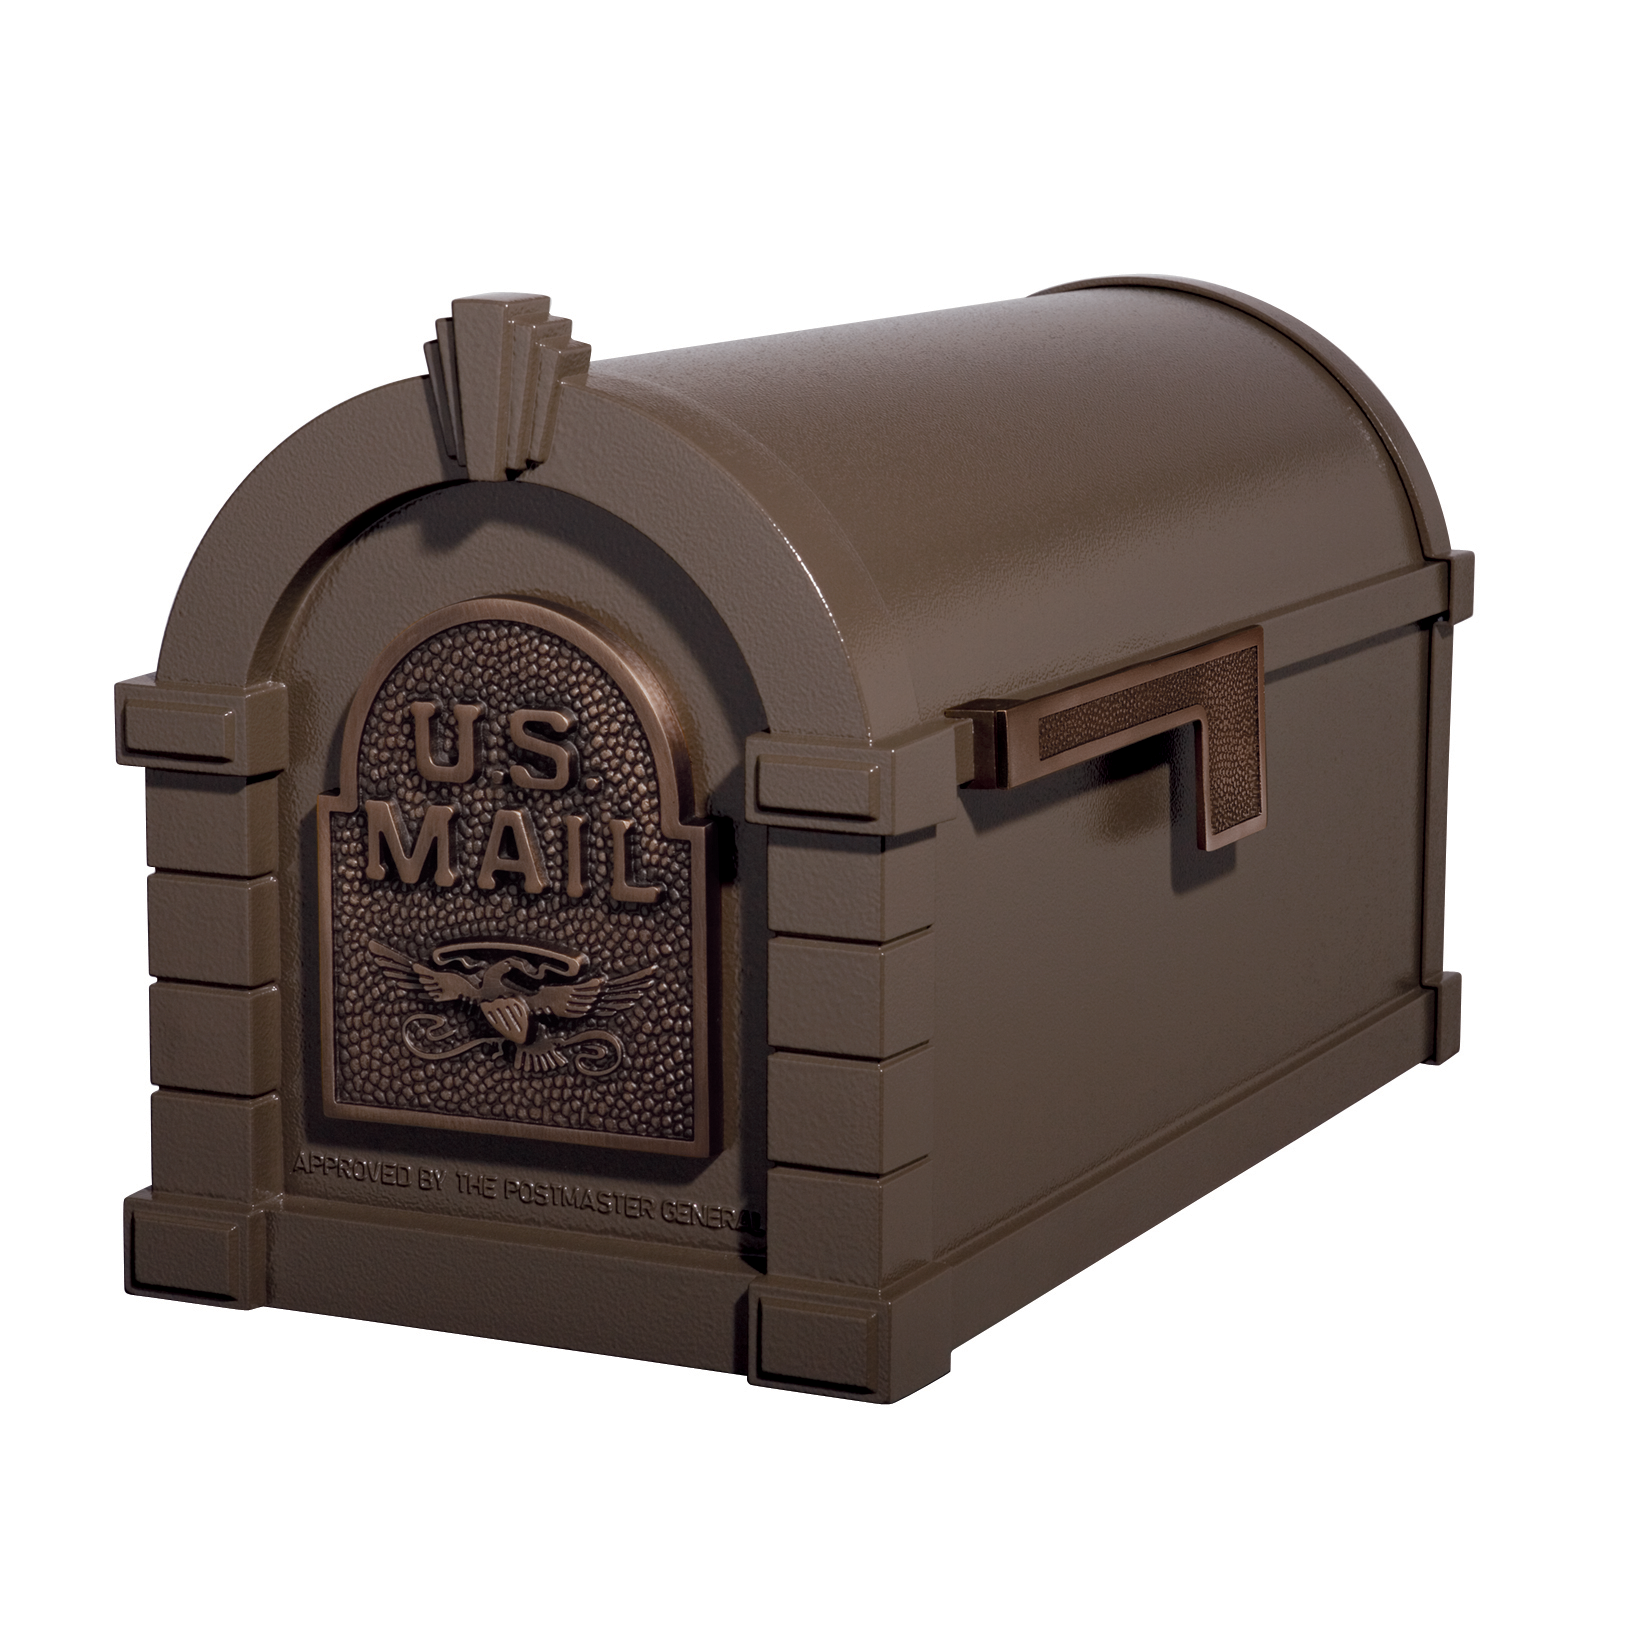 Gaines Eagle Keystone Mailboxes - Bronze with Antique Bronze